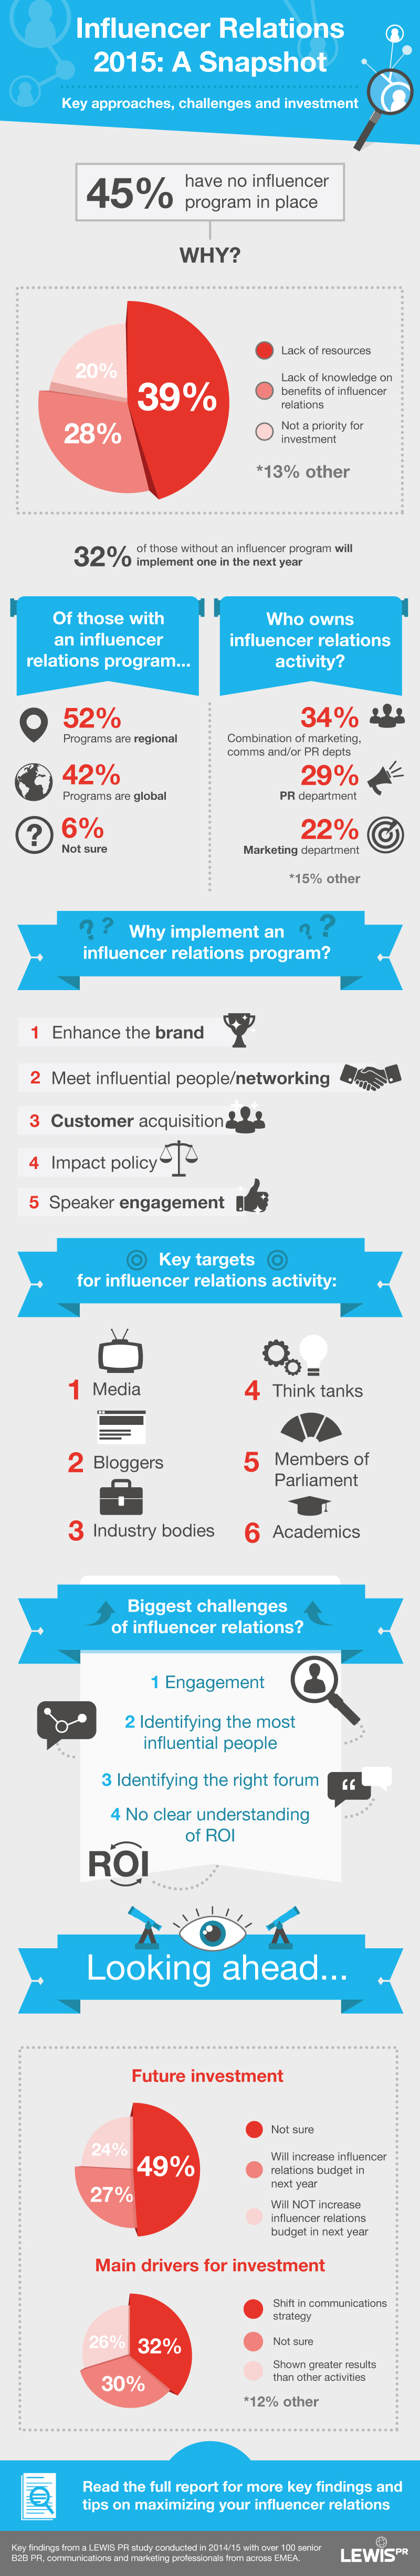 Influencer Relations 2015